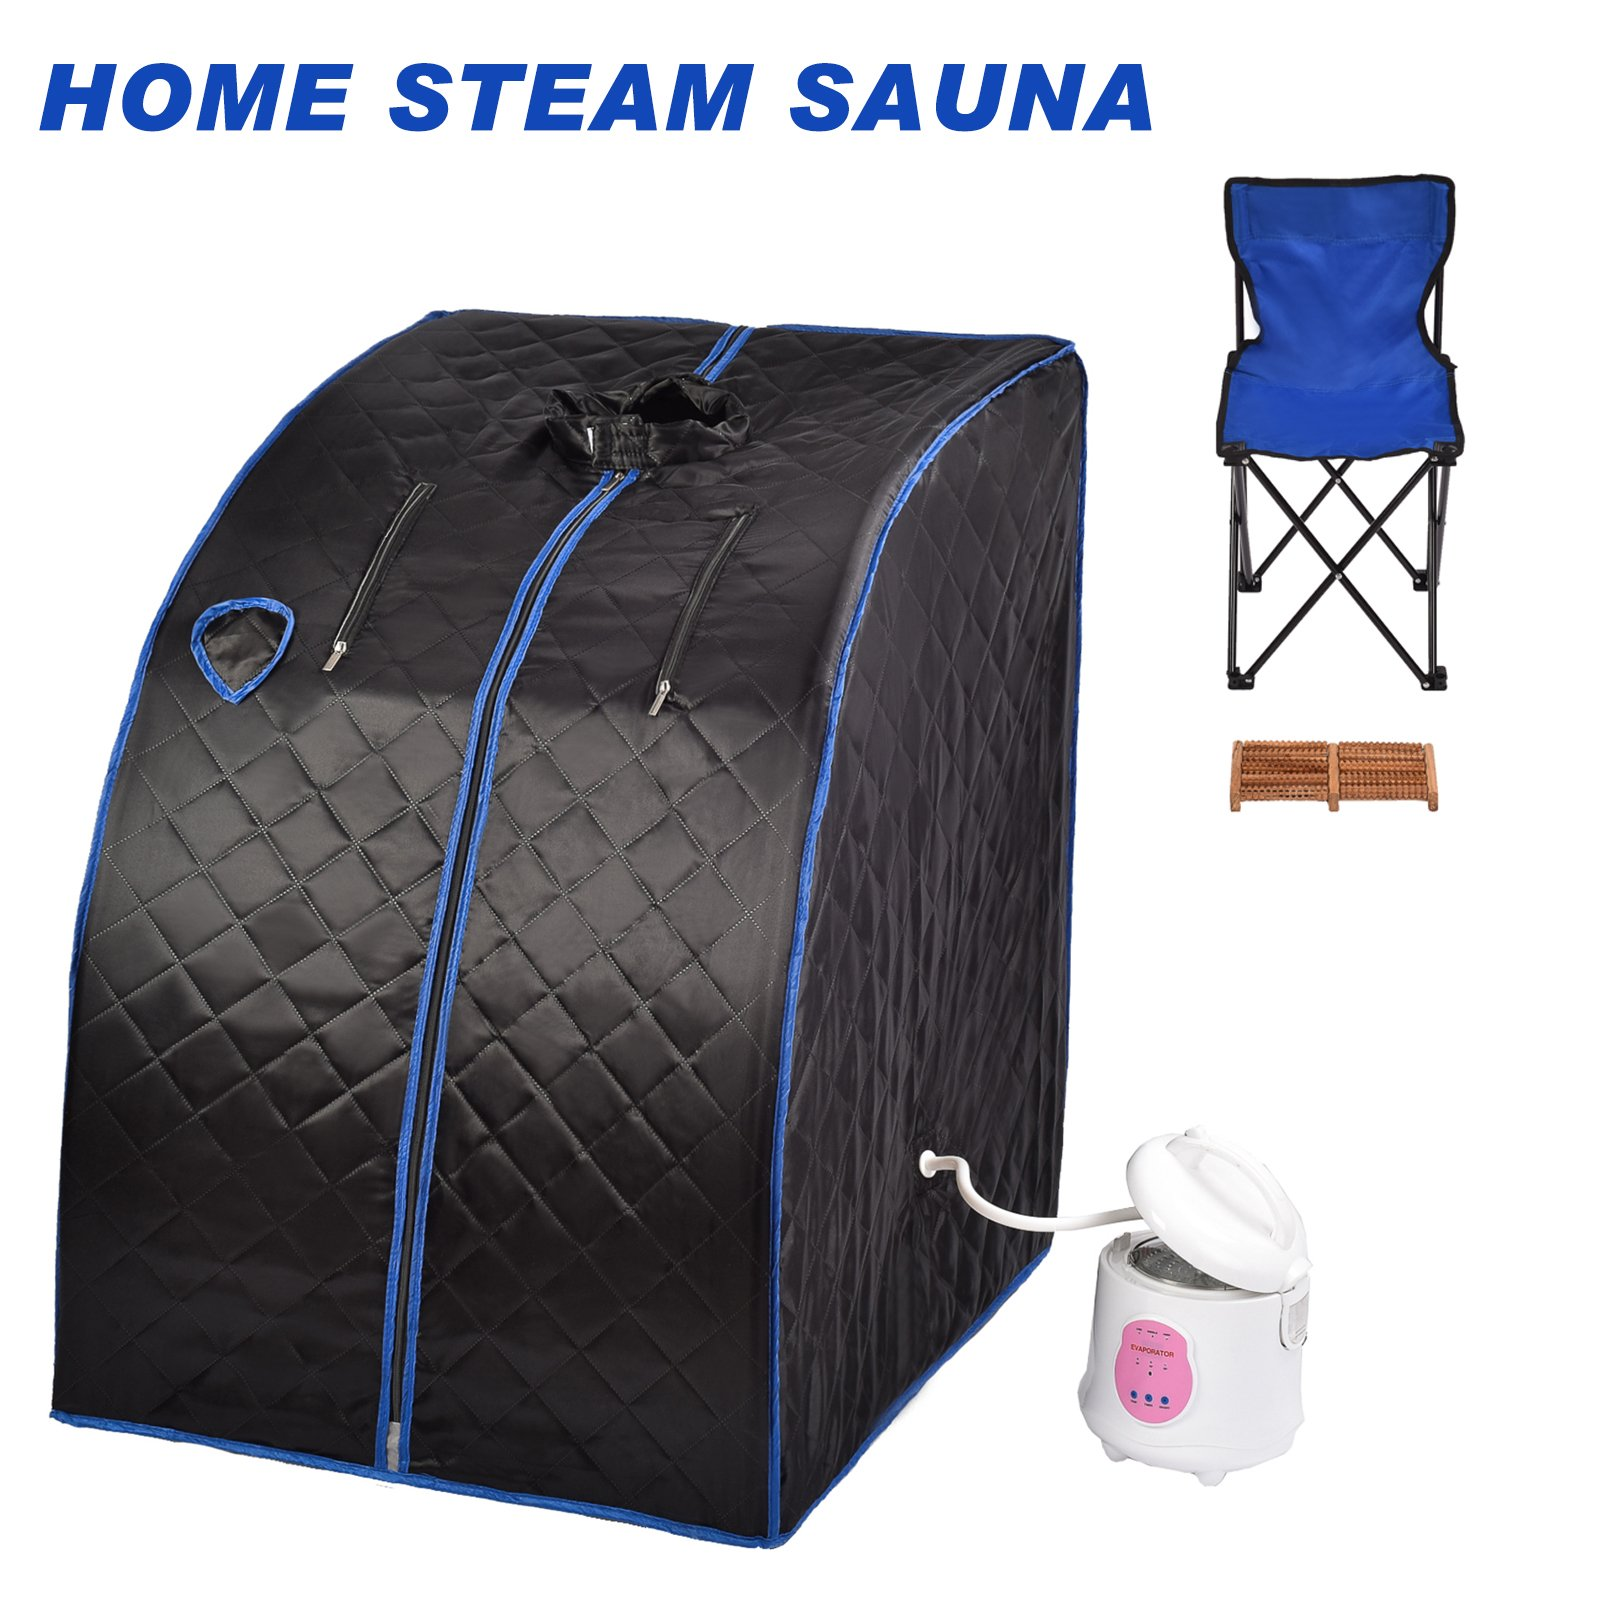 KUPPET Portable Folding Steam Sauna-2L One Person Home Sauna Spa For Full Body Slimming Loss Weight w/Chair, Remote Control, Steam Pot, Foot Rest, Mat(Black)